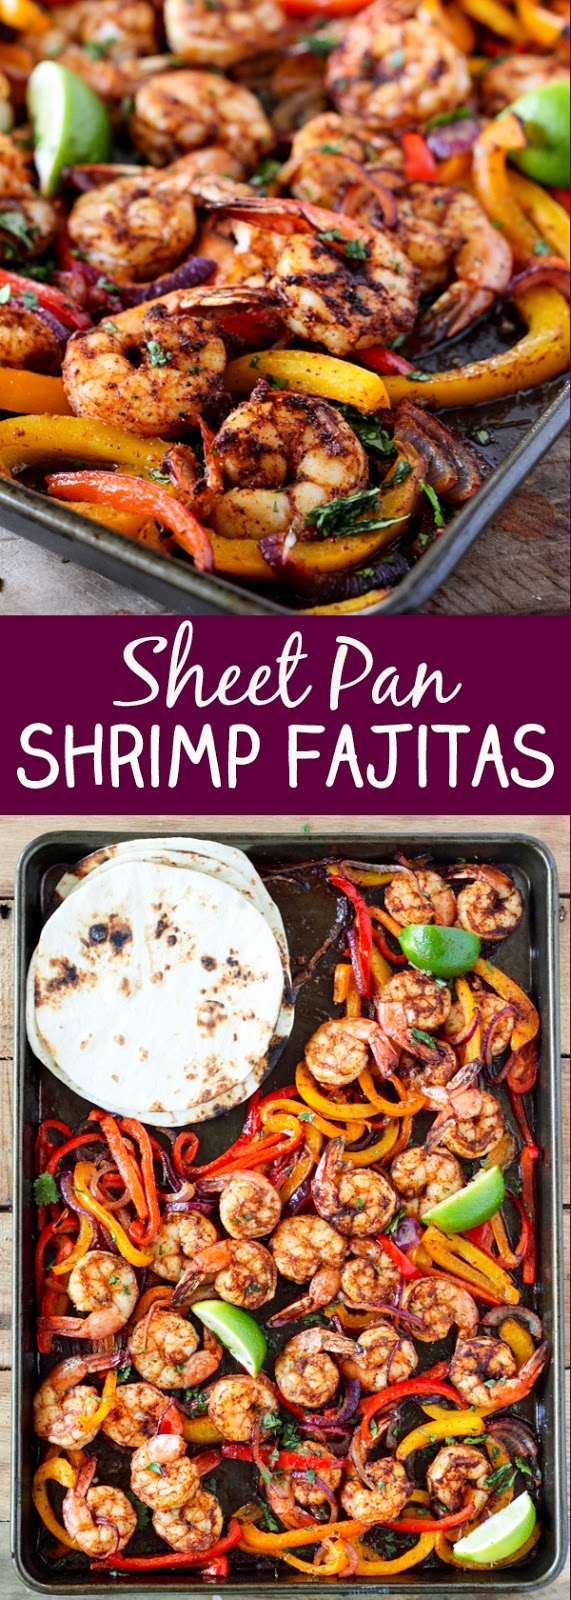 Sheet Pan Shrimp Fajitas Recipes #shrimprecipes #food #recipes #kitchen